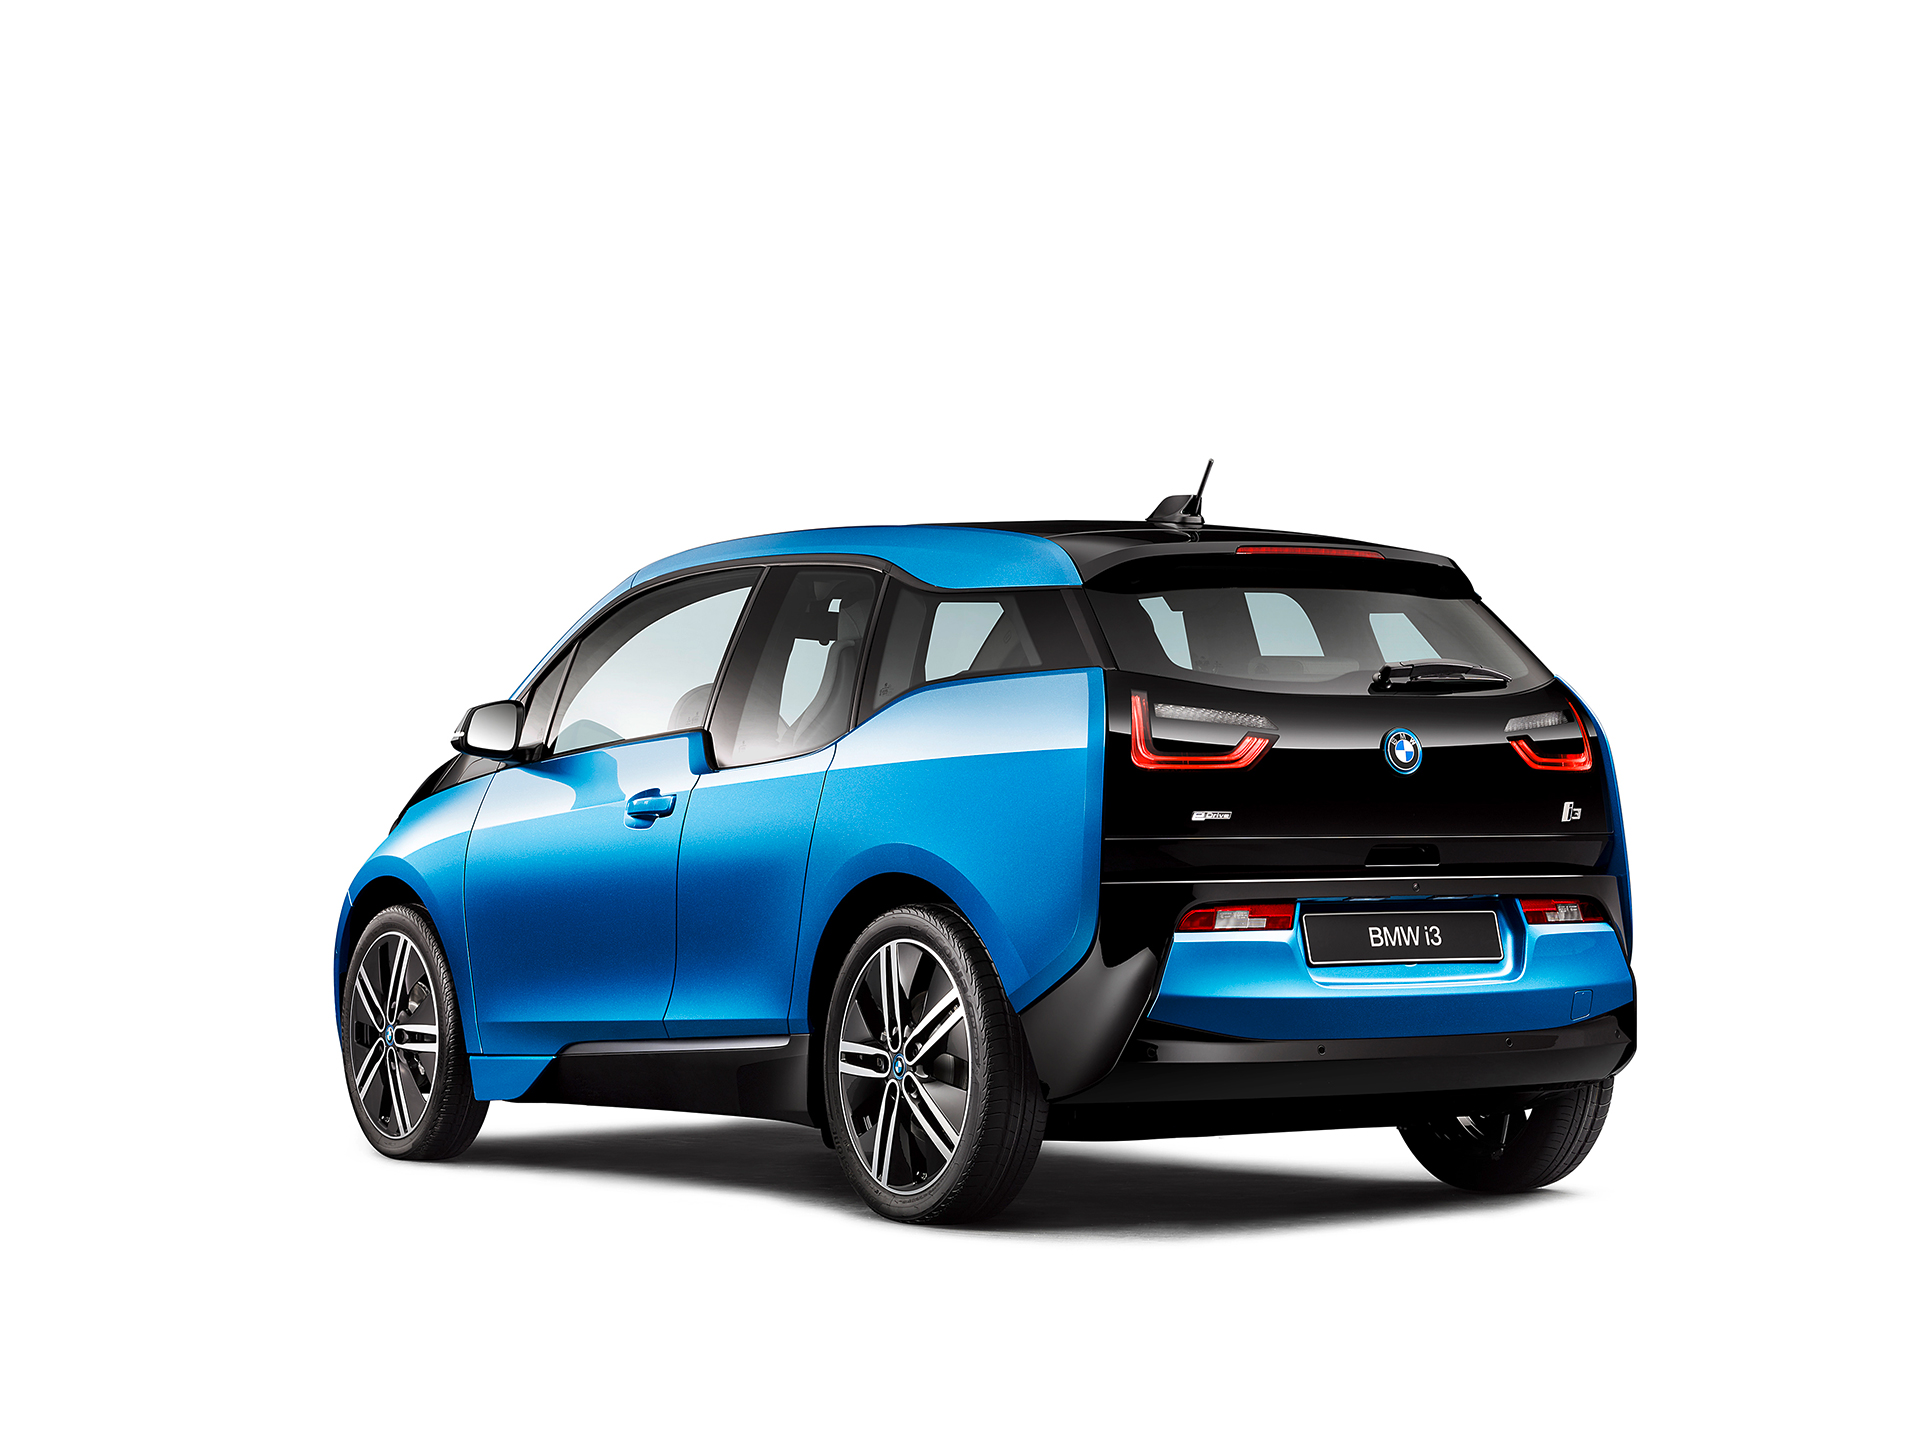 BMW i3 94ah - 2017 - rear side-face / profil arriere